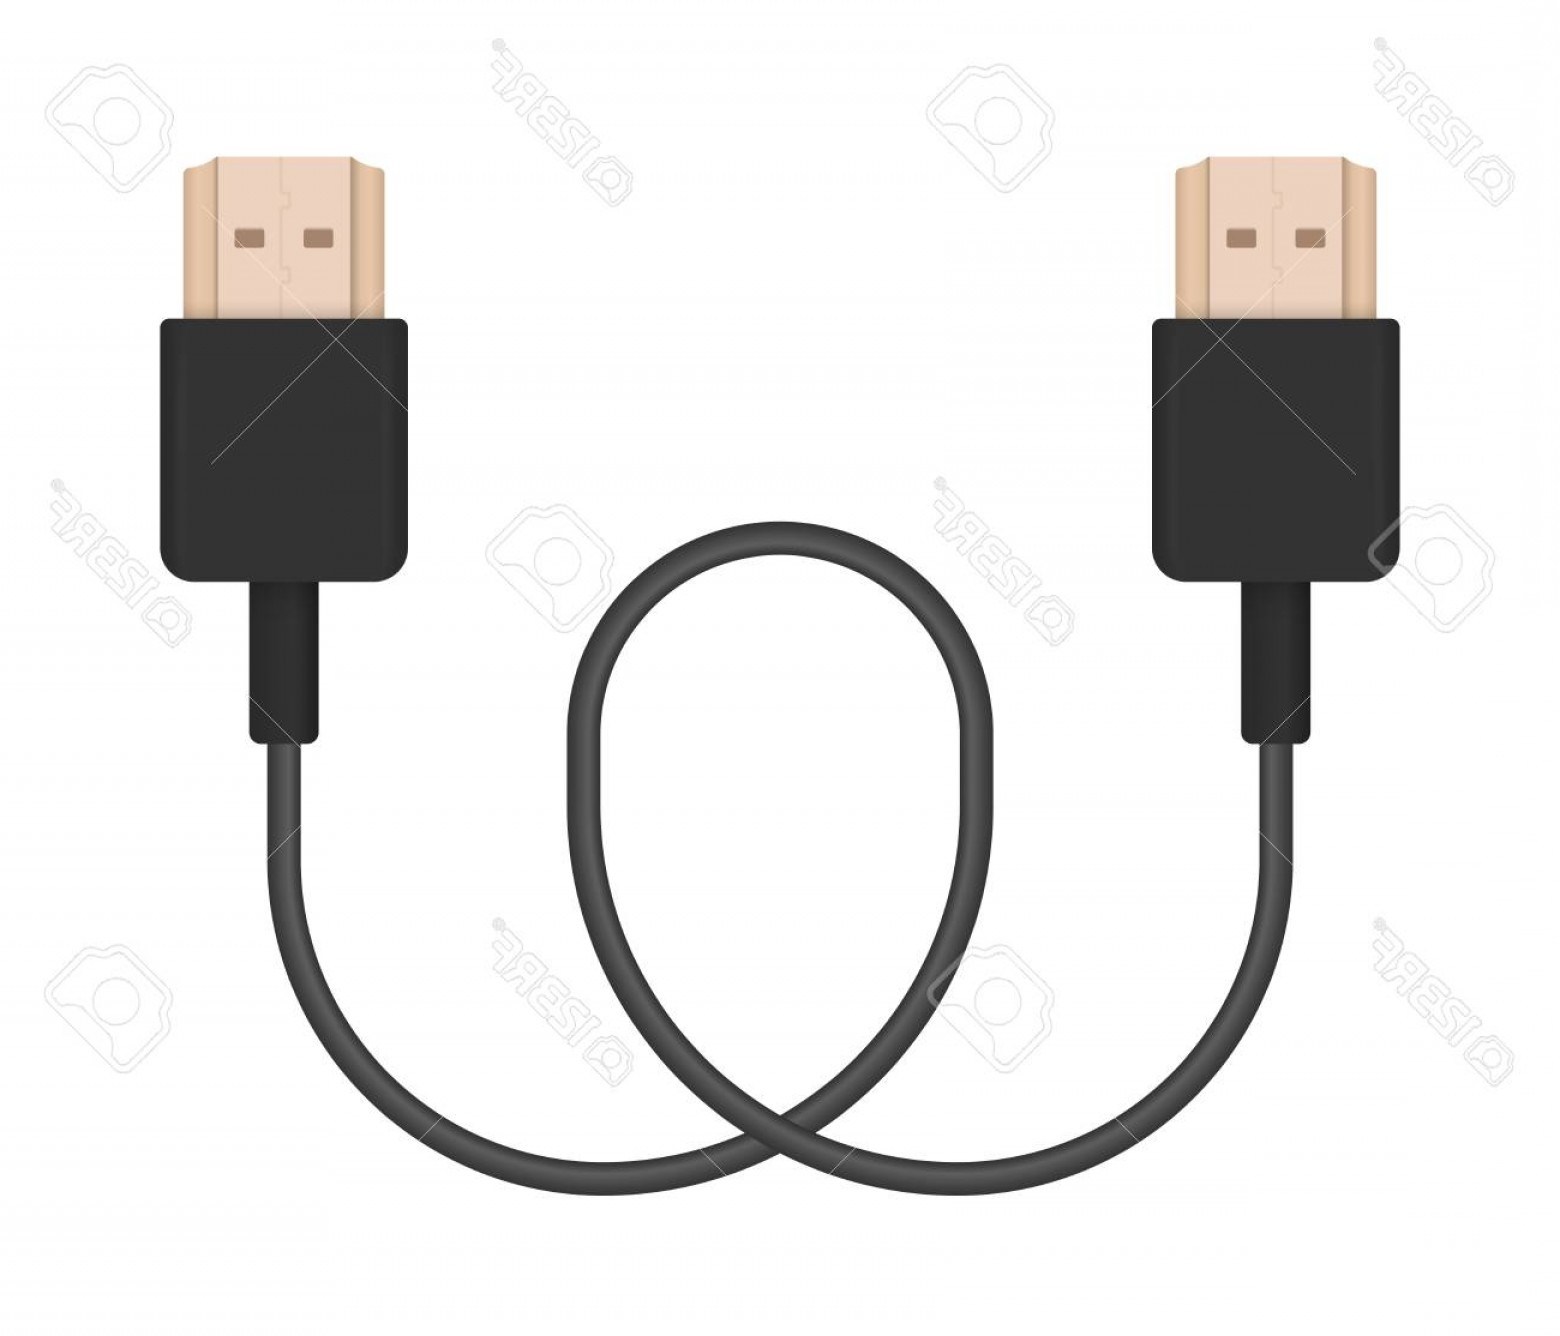 Vector Connector: Photostock Vector The Realistic Vector Illustration Of Hdmi Cable Connector Or Plug For Connecting And Charging Phones